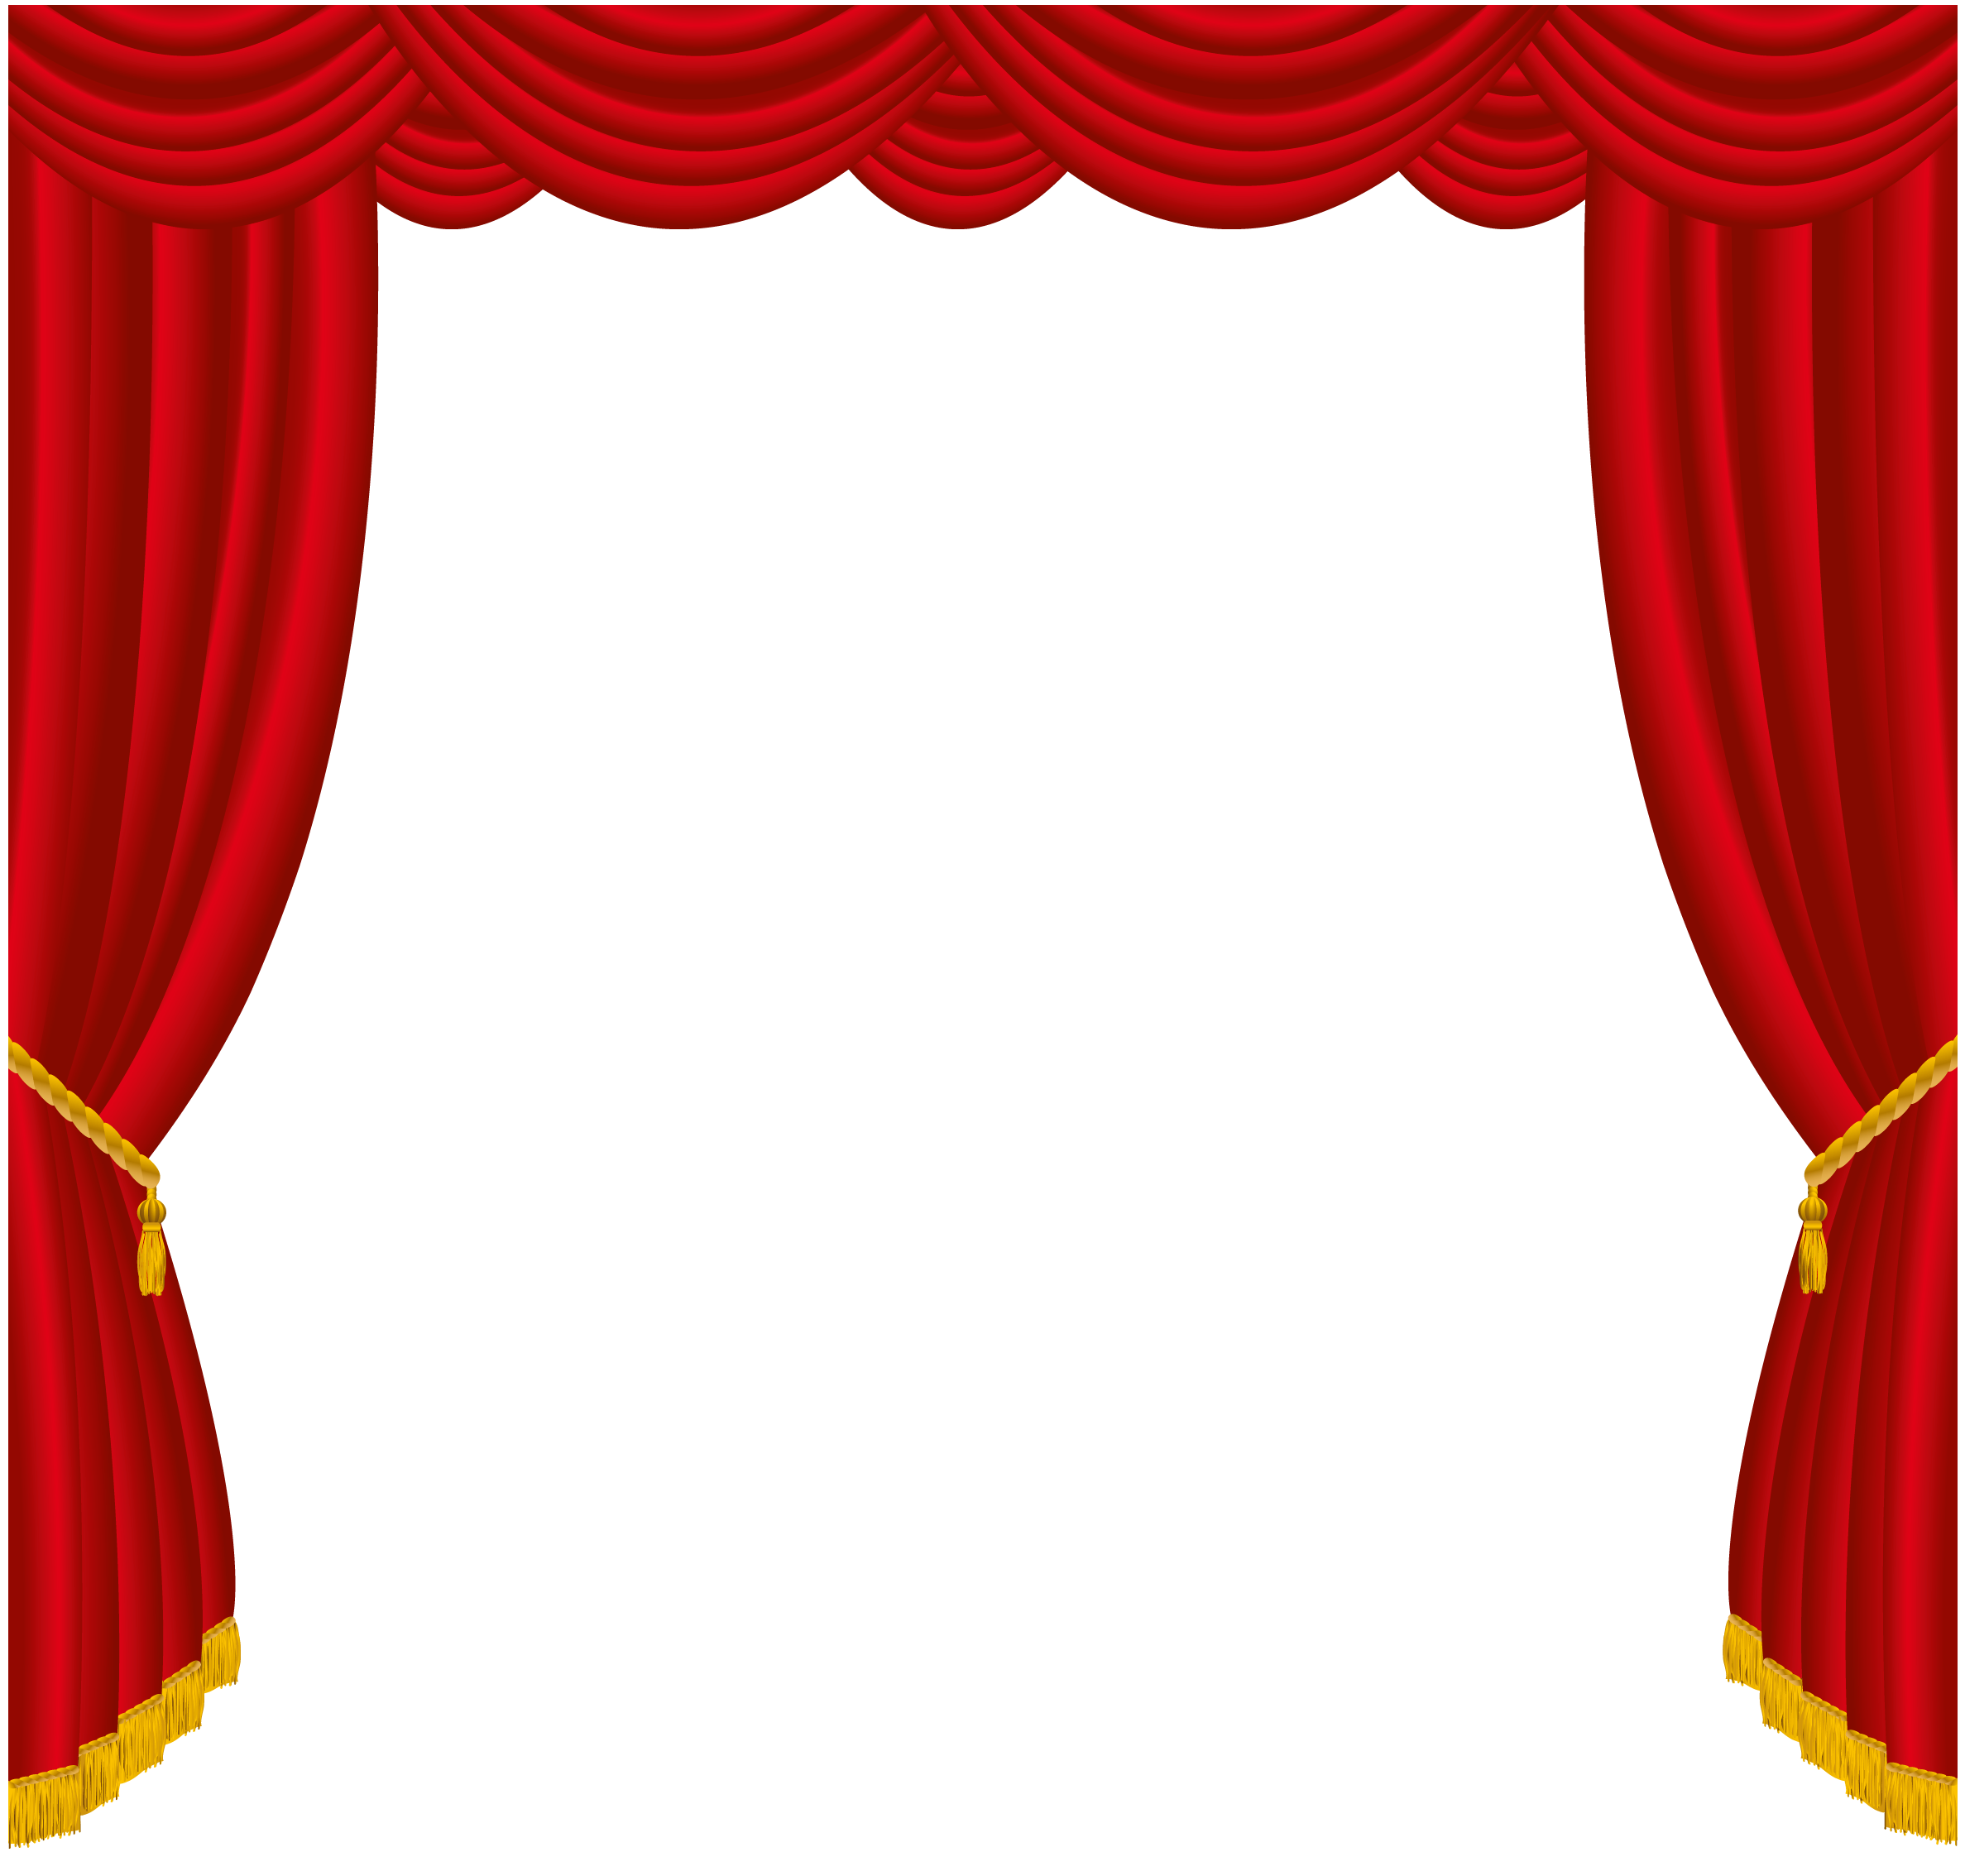 small resolution of stage curtains red curtains paper curtain clipart gallery frame background background